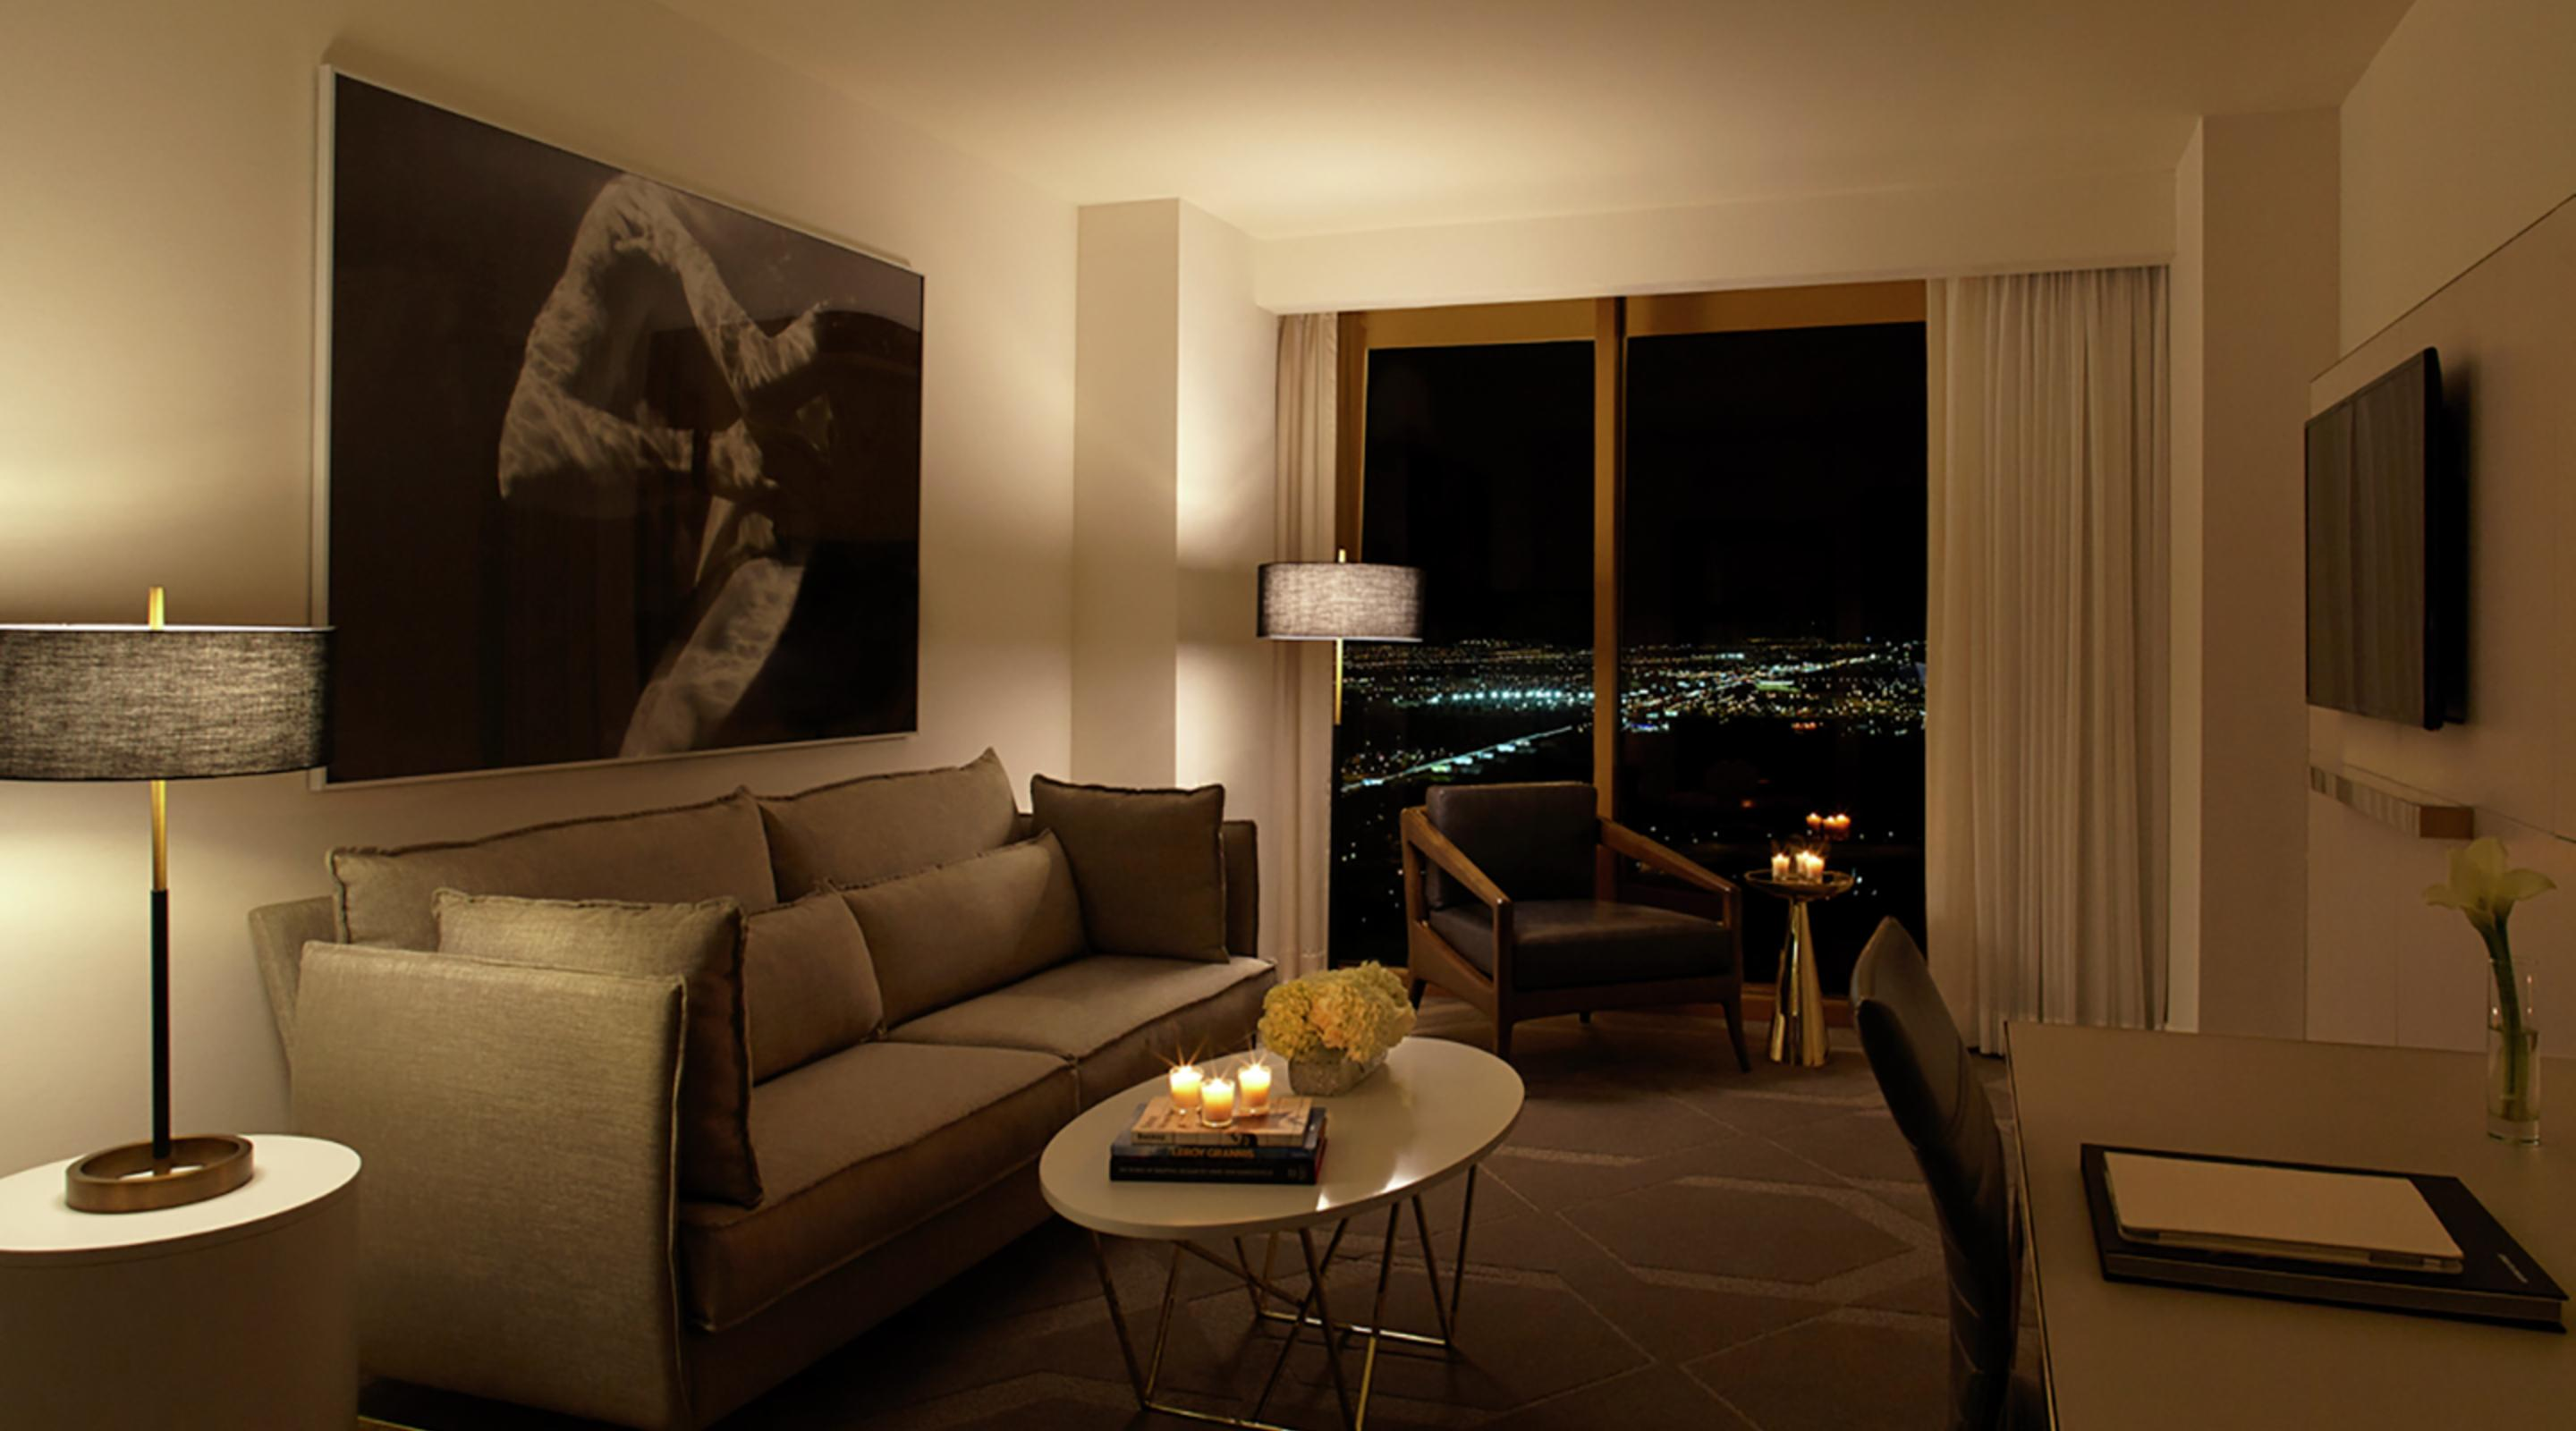 Delano suites feature a separate living room with floor to ceiling windows.